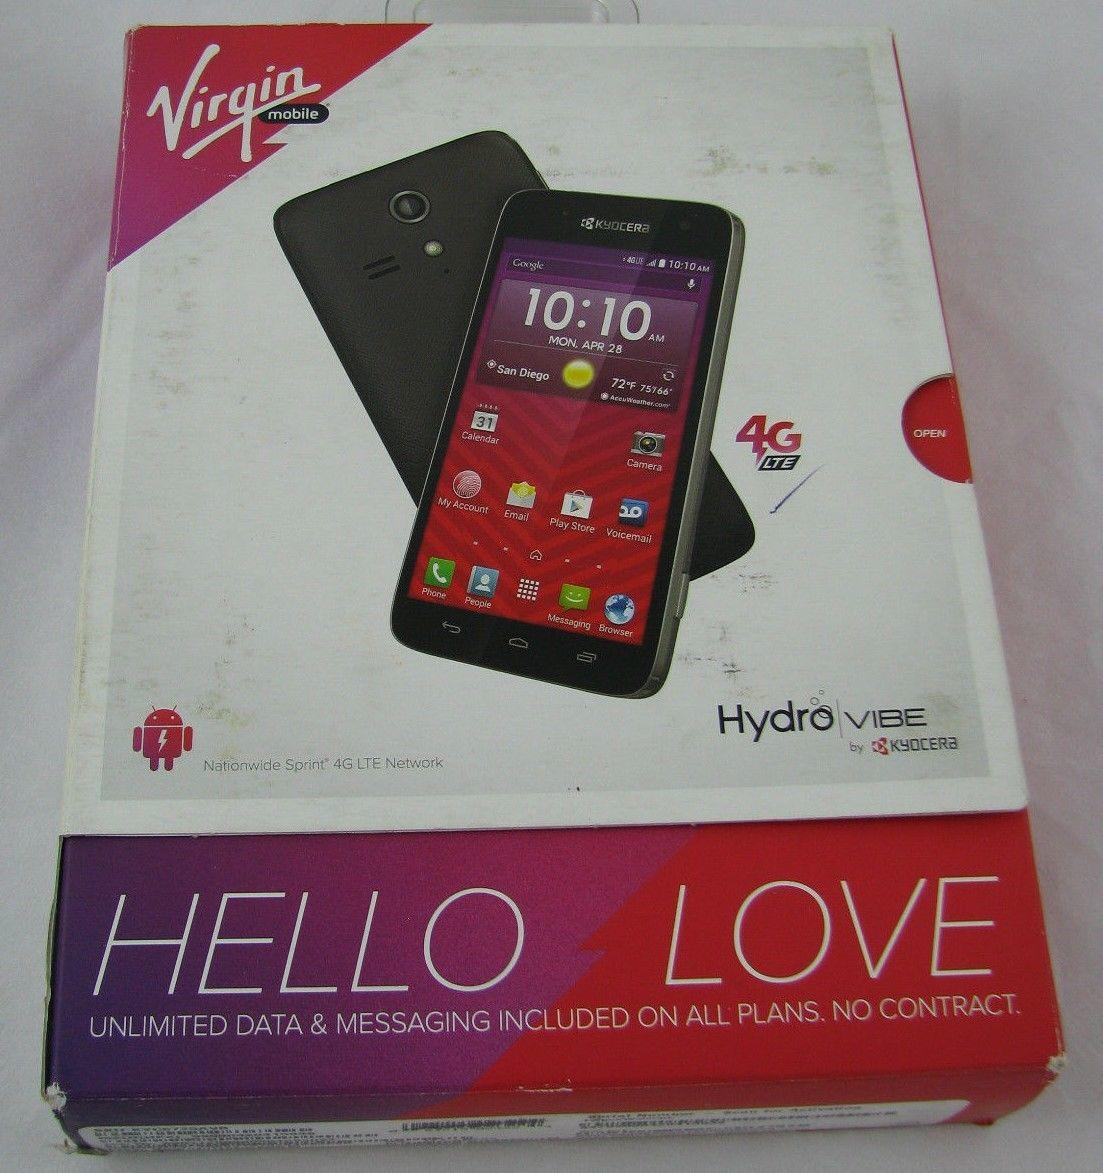 Kyocera Hydro Vibe Virgin Mobile Prepaid - Black. New. Sealed. Free Shipping.